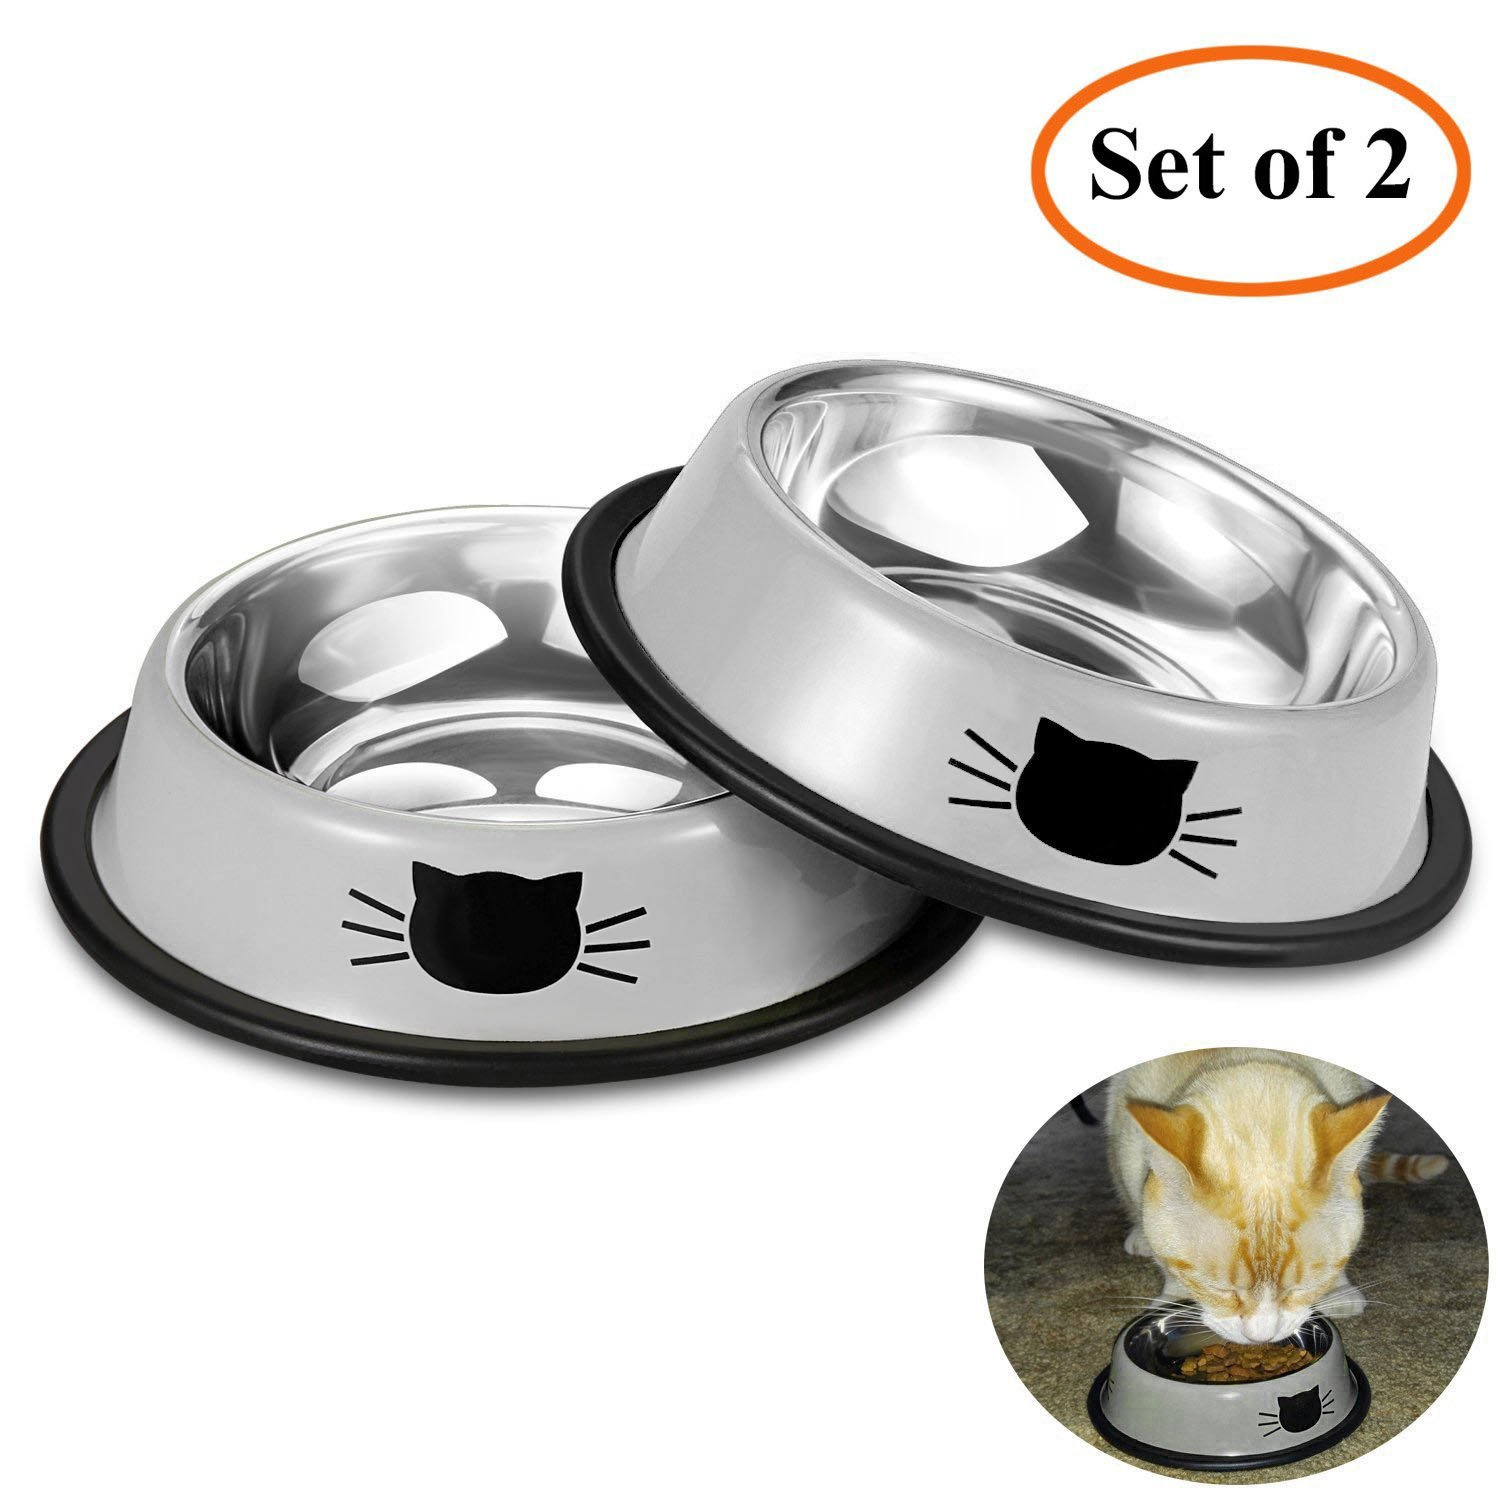 Comsmart Stainless Steel Pet Cat Bowl Kitten Puppy Dish Bowl with Cute Cats Painted Non Skid for Small Dogs Cats Animals 2 Pack